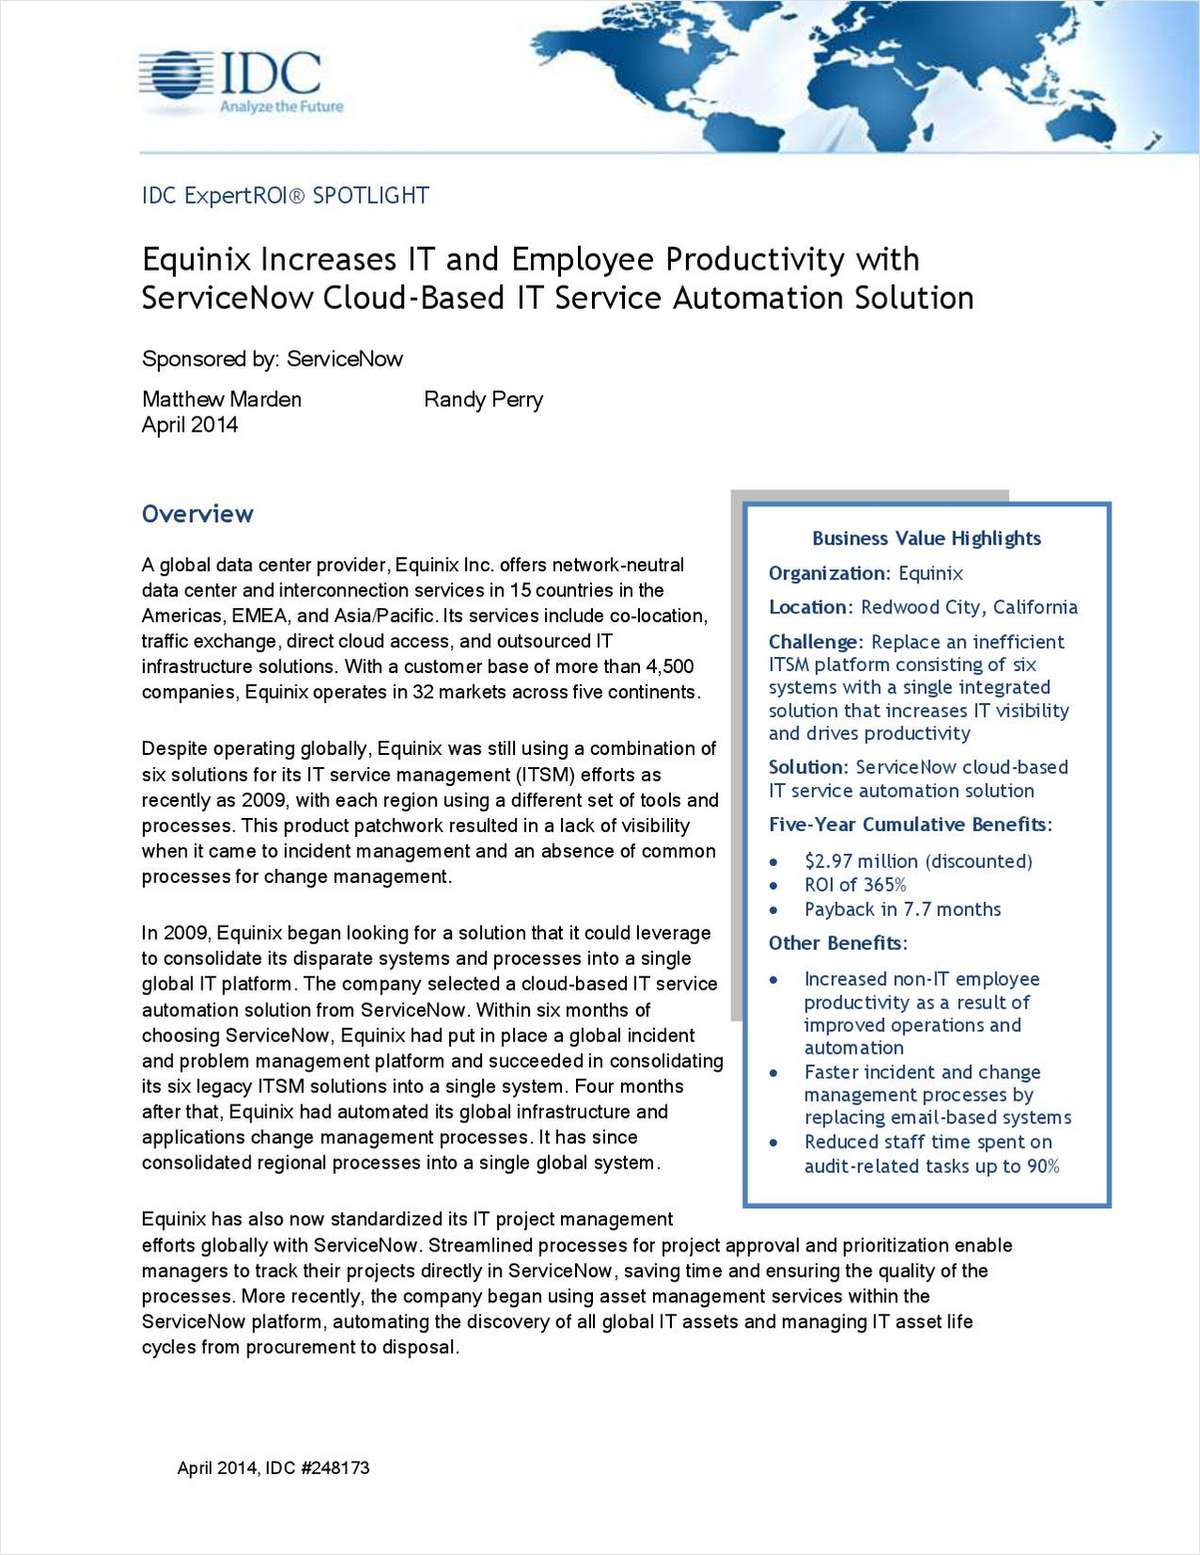 Equinix Increases IT and Employee Productivity with ServiceNow Cloud-Based IT Service Automation Solution